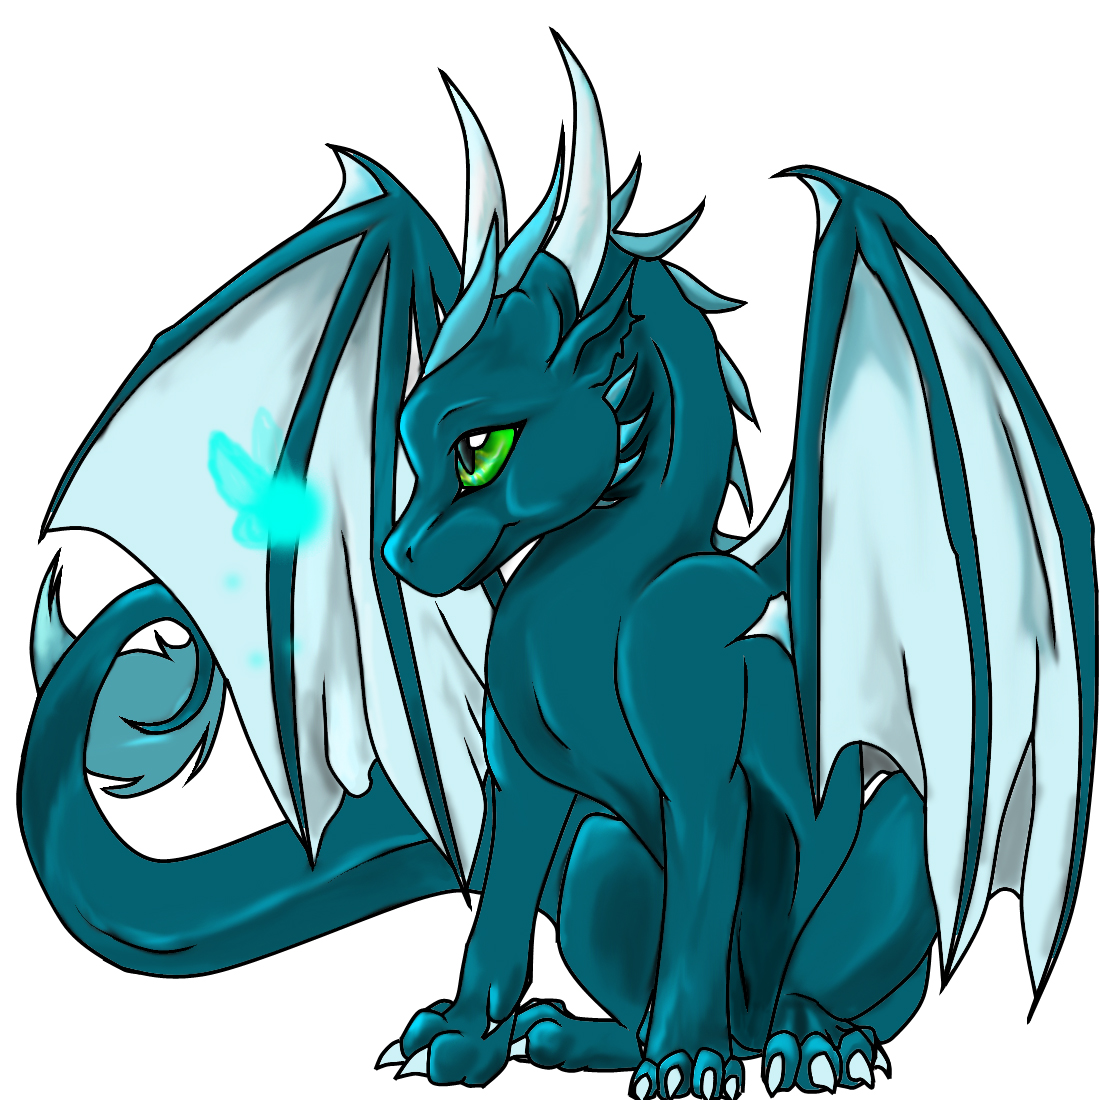 1100x1100 Direct Baby Dragons Pictures Dragon Pics Free Download Clip Art